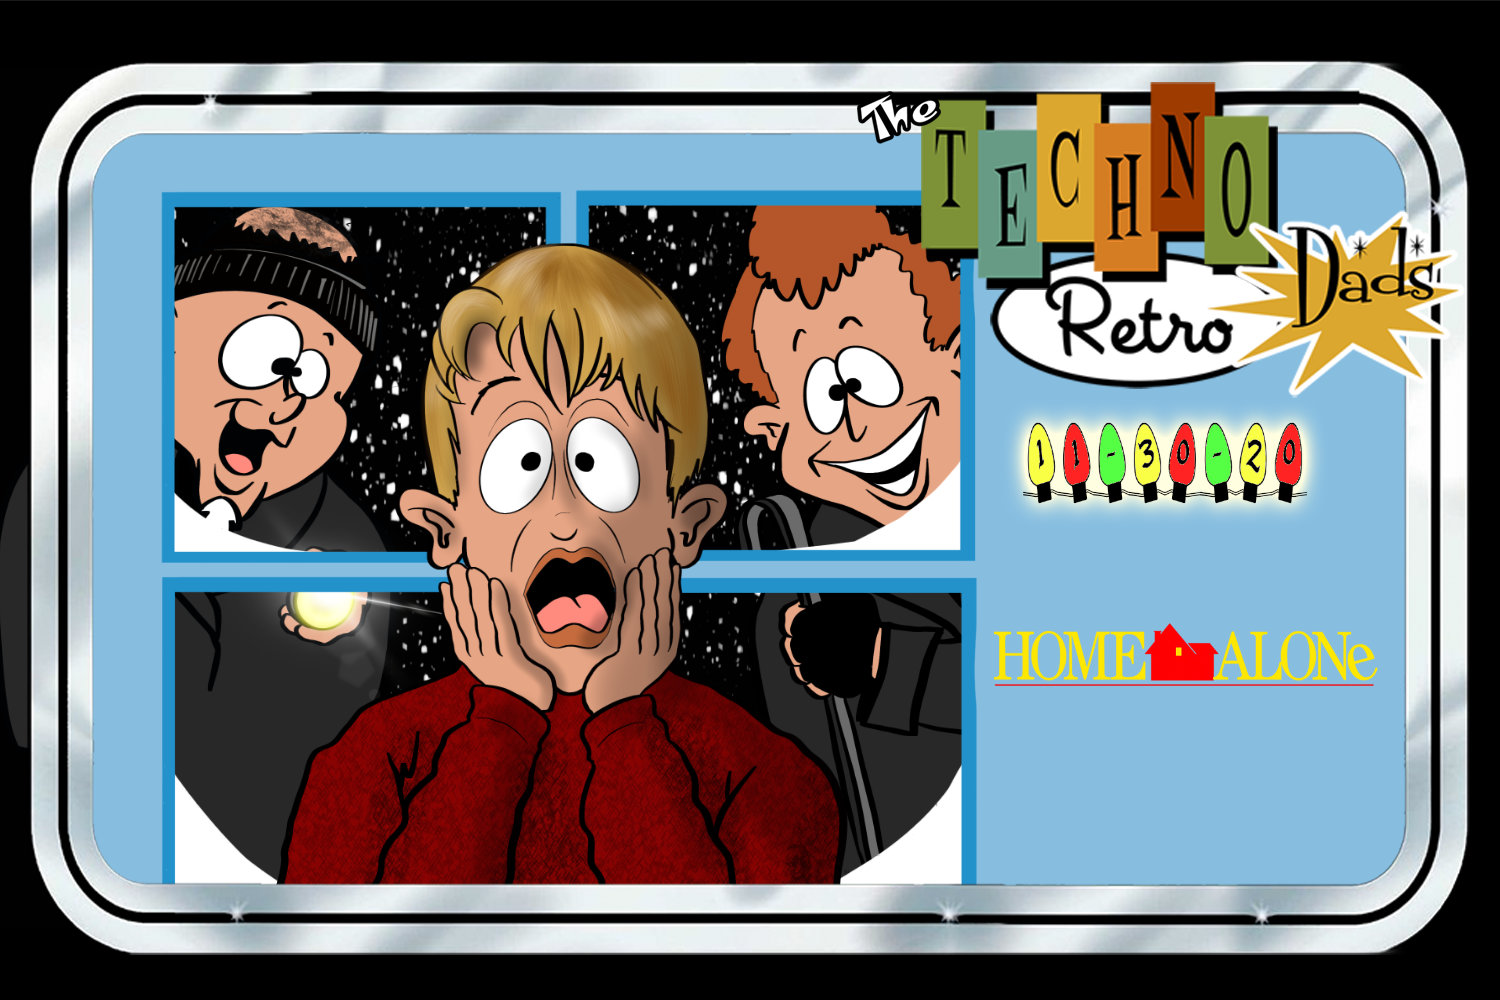 TechnoRetro Dads: Home Alone Together